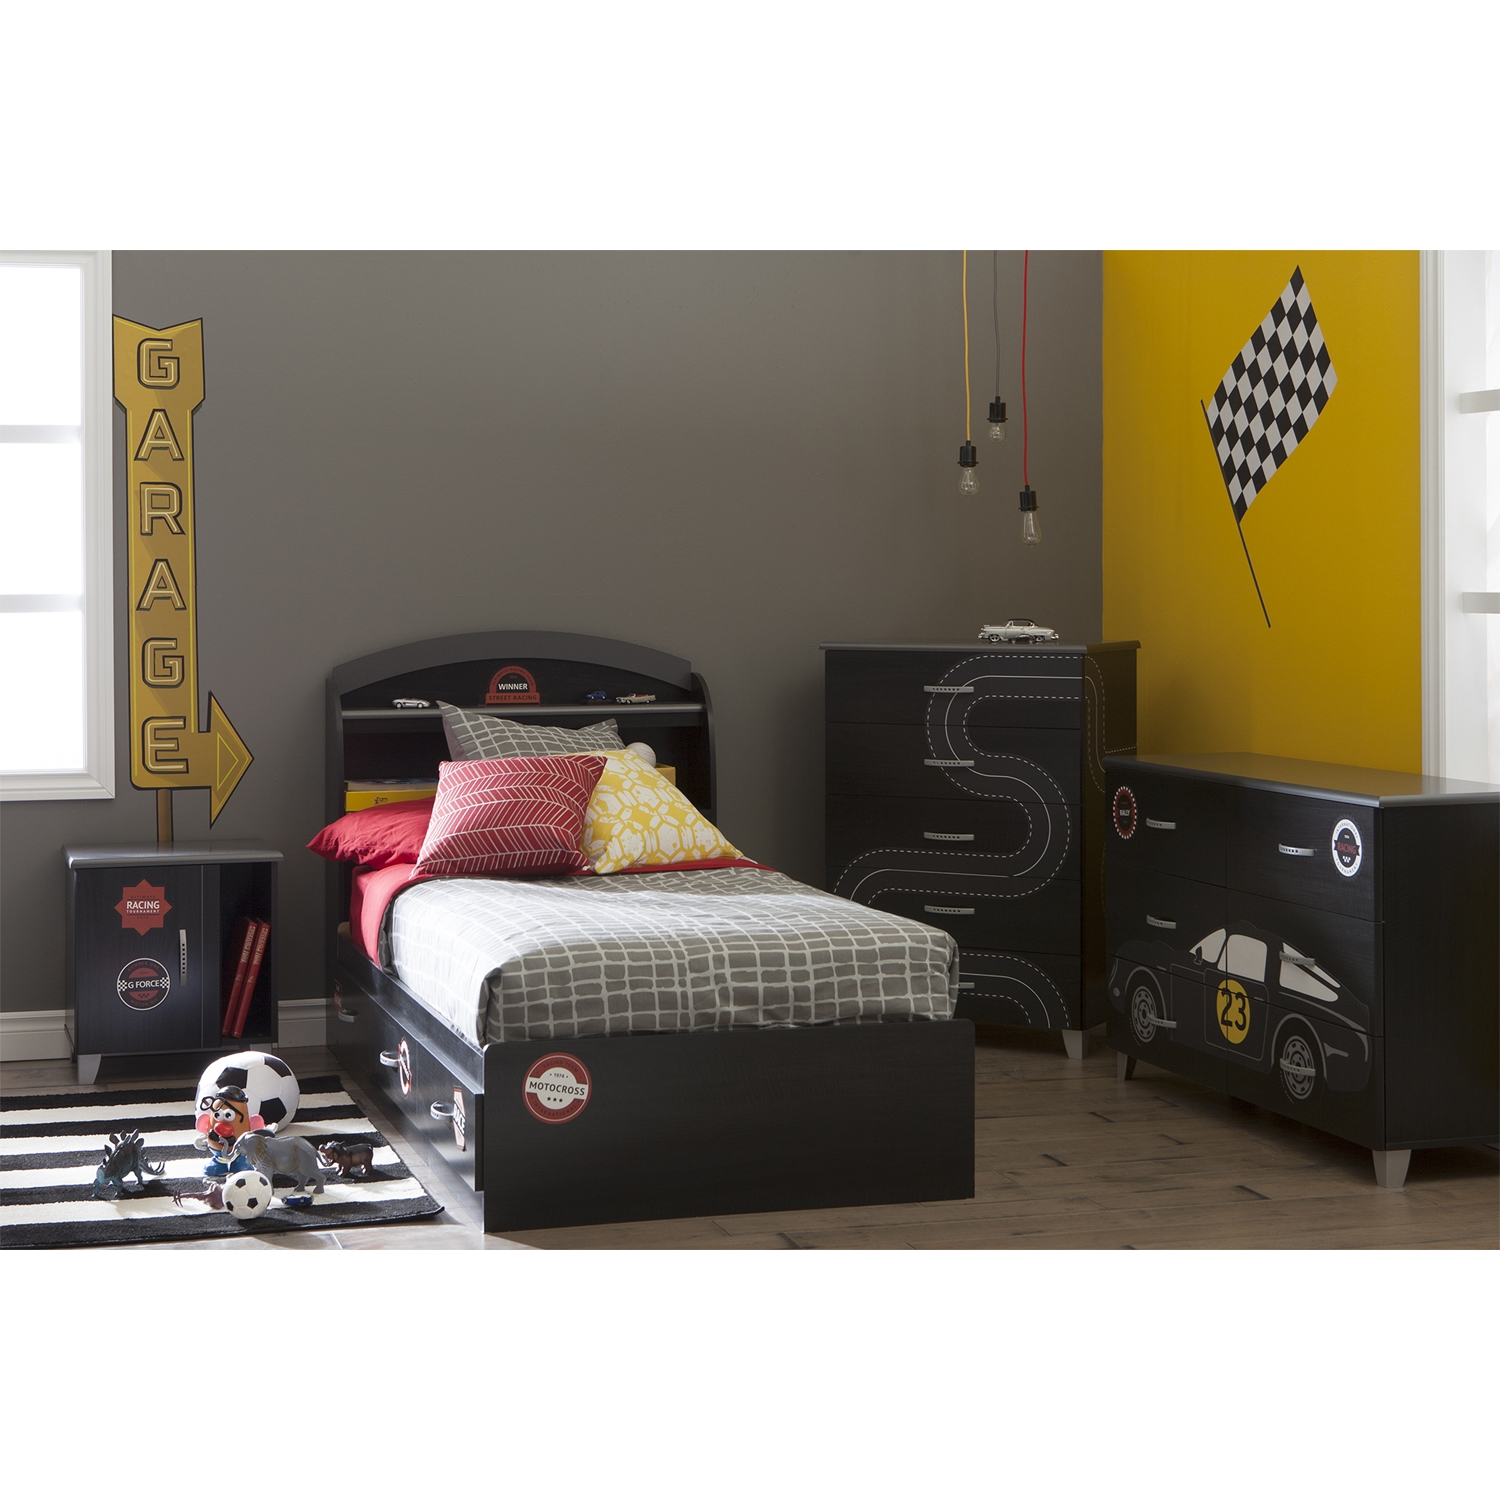 Luka 5 Drawers Chest - Race Track Decals, Black Onyx and Charcoal - SS-8050027K